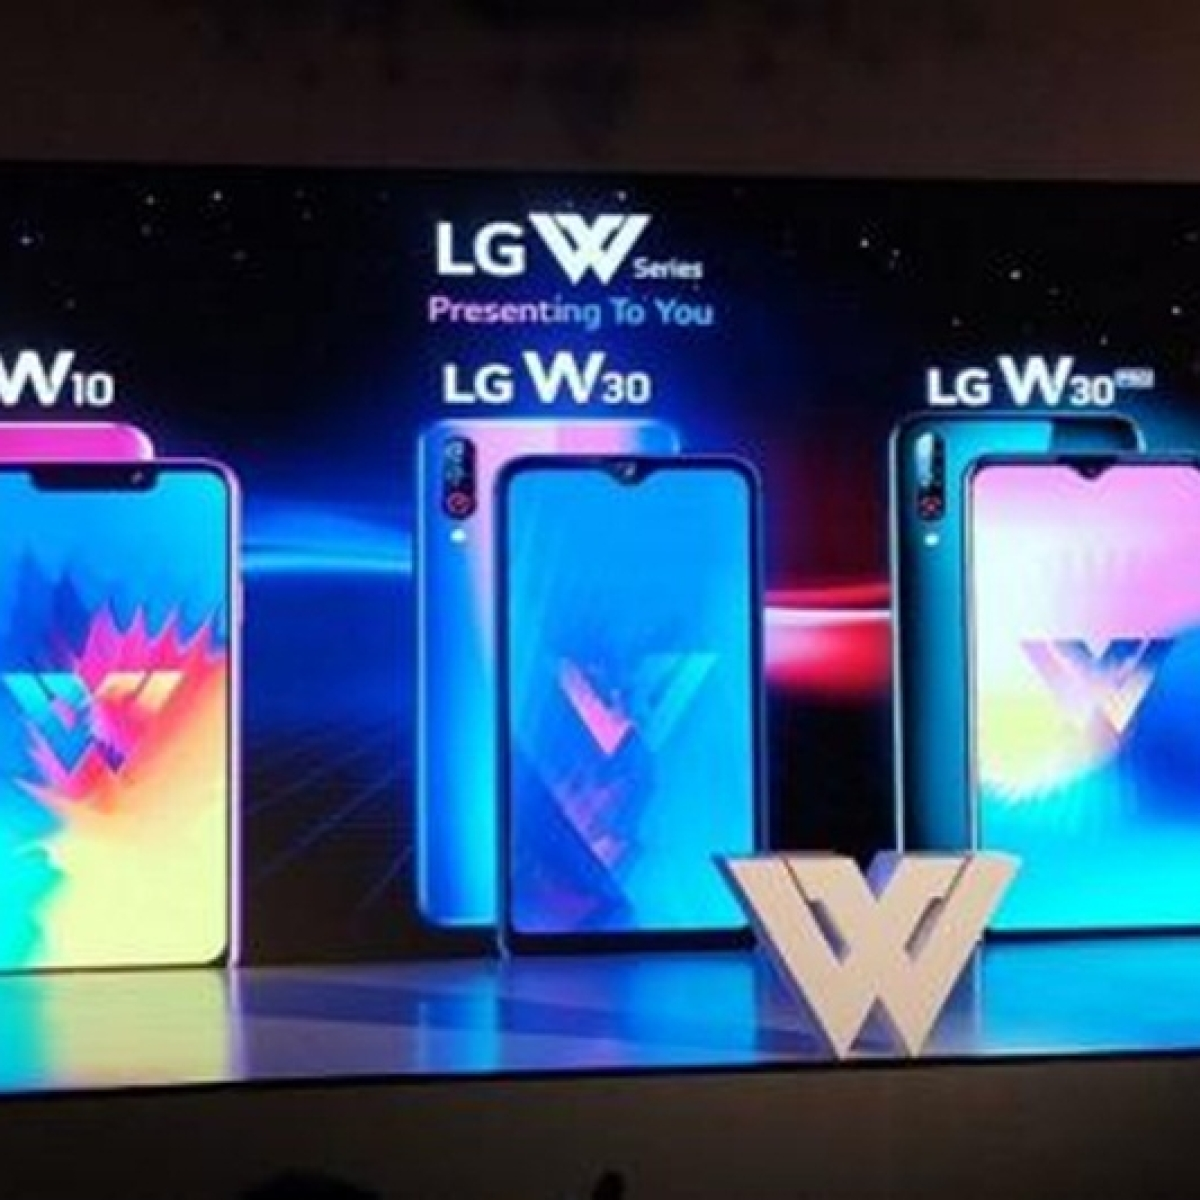 LG W10, W30 launched in India at starting price of Rs 8,000; W30 Pro announced